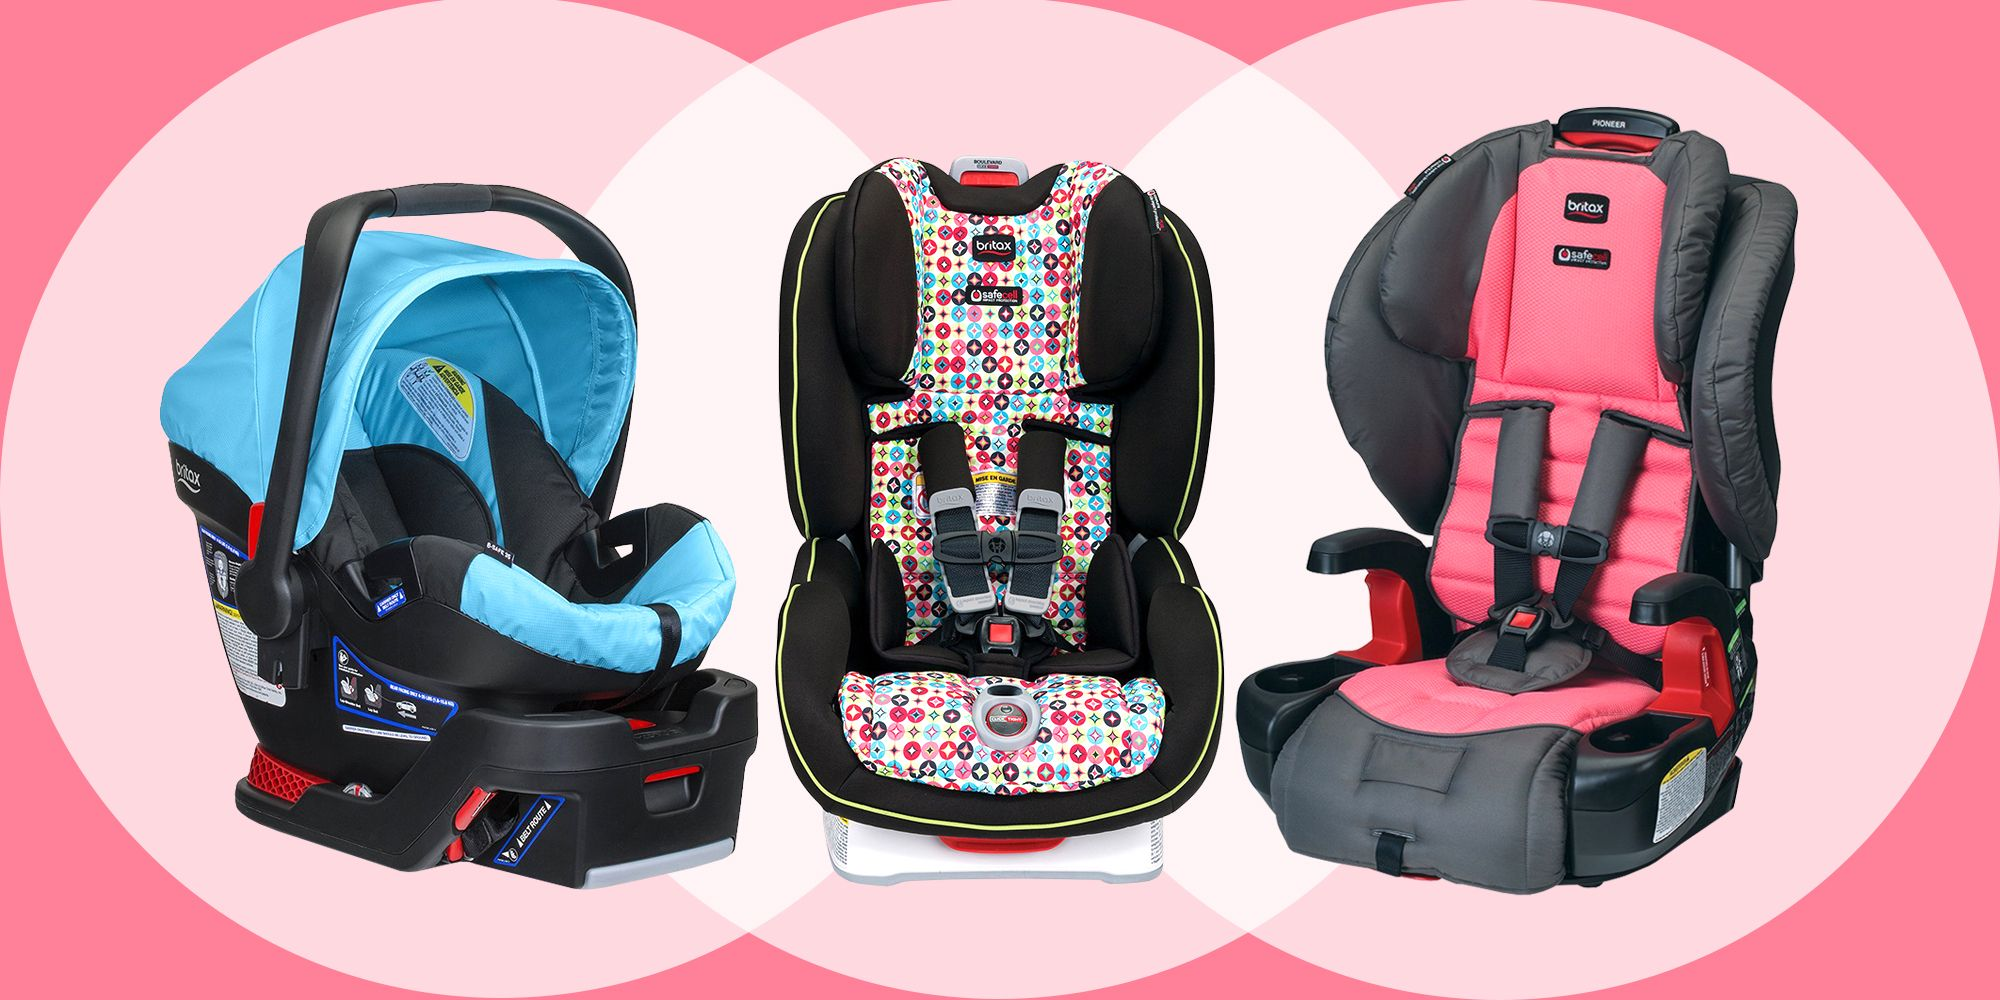 Phenomenal 8 Best Britax Car Seats For 2018 Reviews Of Britax Car Pdpeps Interior Chair Design Pdpepsorg